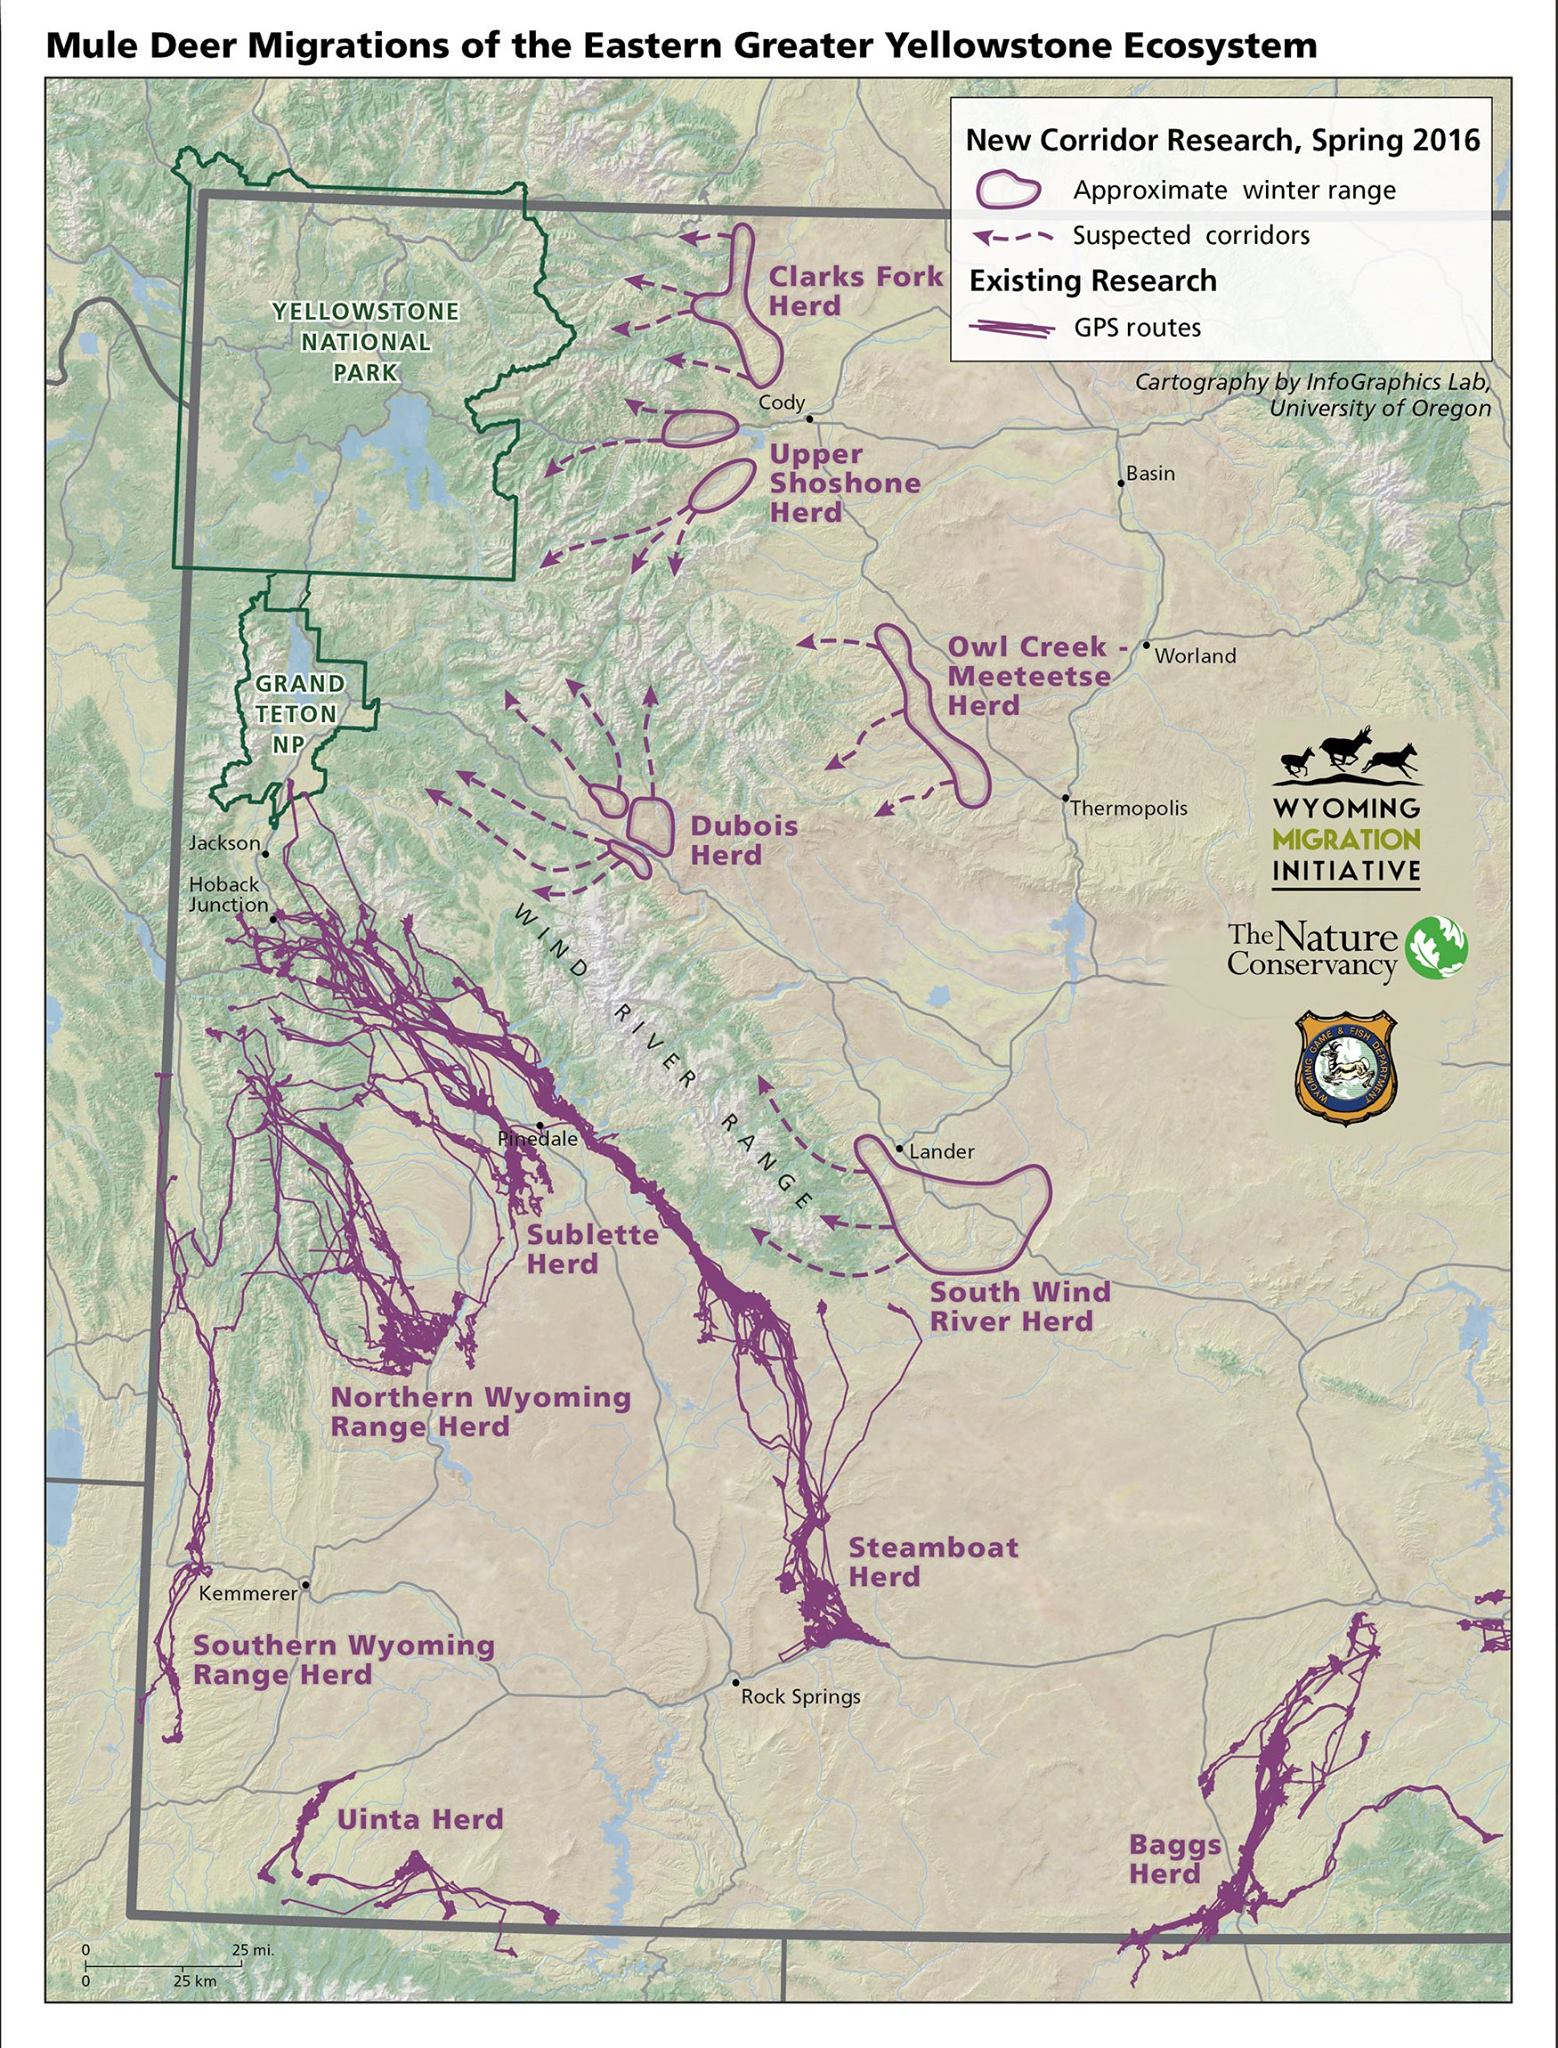 Biologists Launch Study Of Greater Yellowstone Mule Deer Migrations